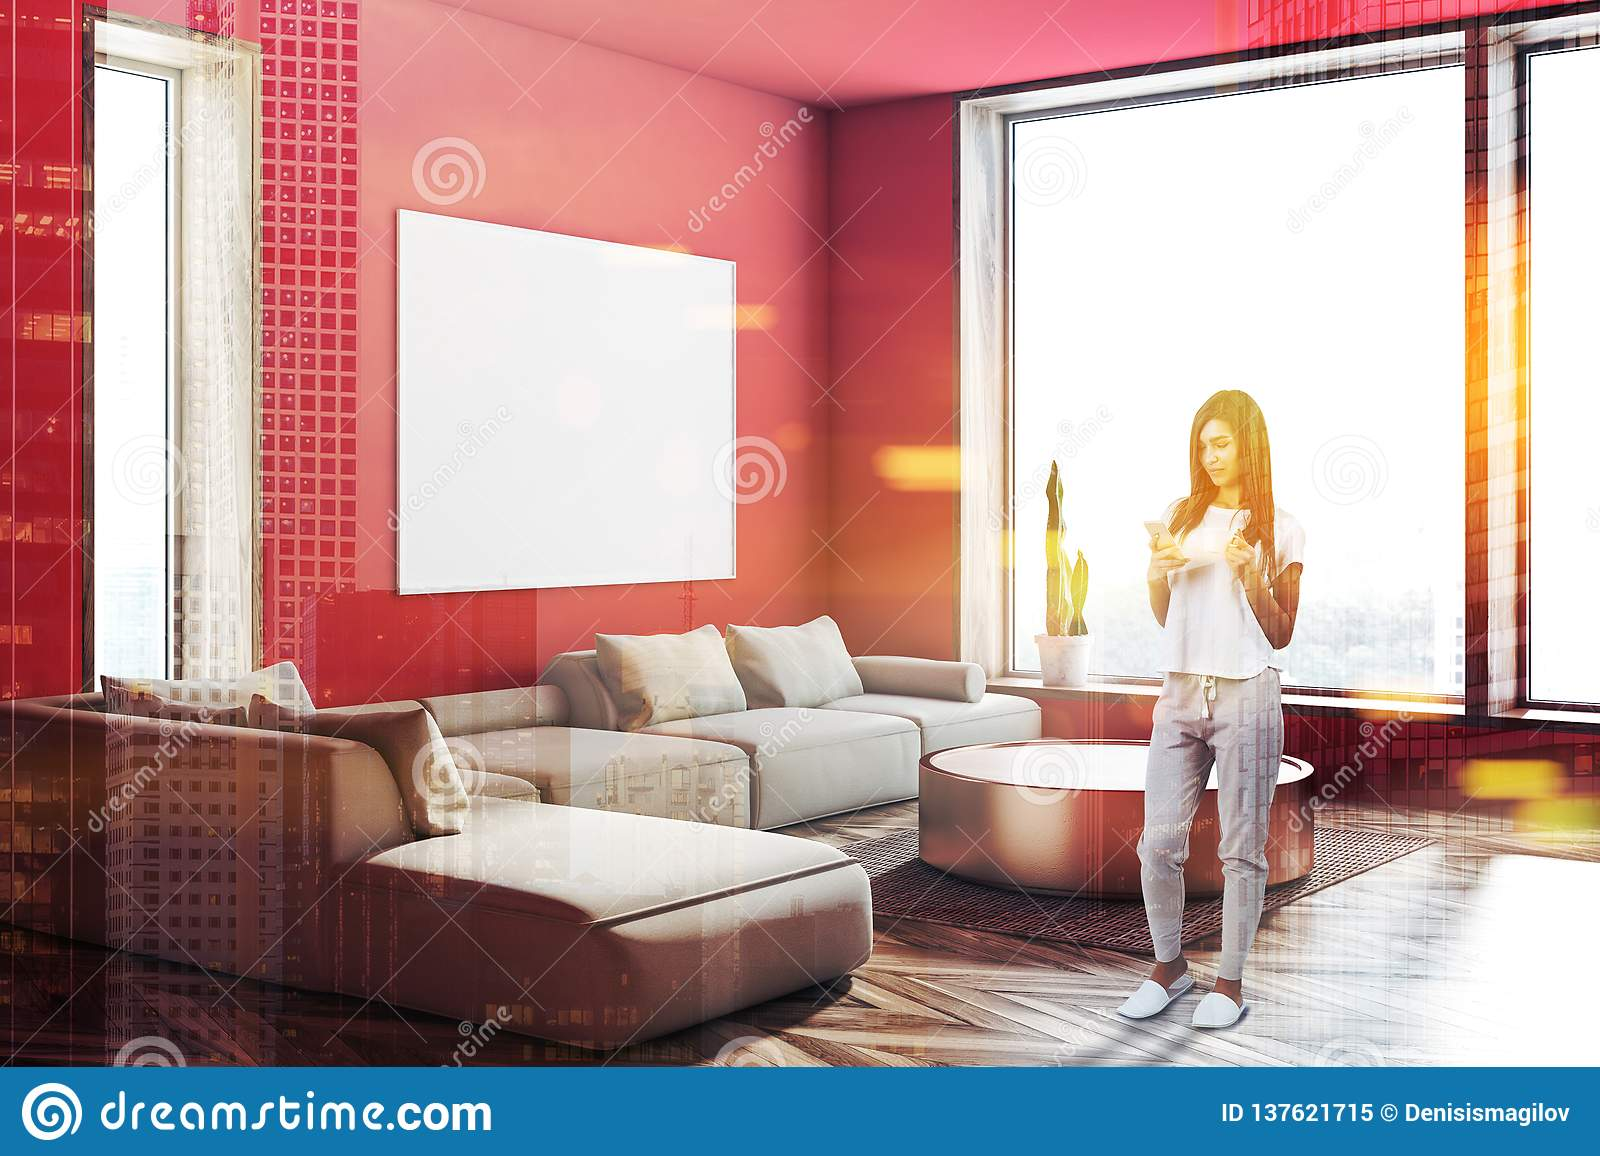 Marvelous Red Living Room Corner Sofa And Poster Woman Stock Image Caraccident5 Cool Chair Designs And Ideas Caraccident5Info